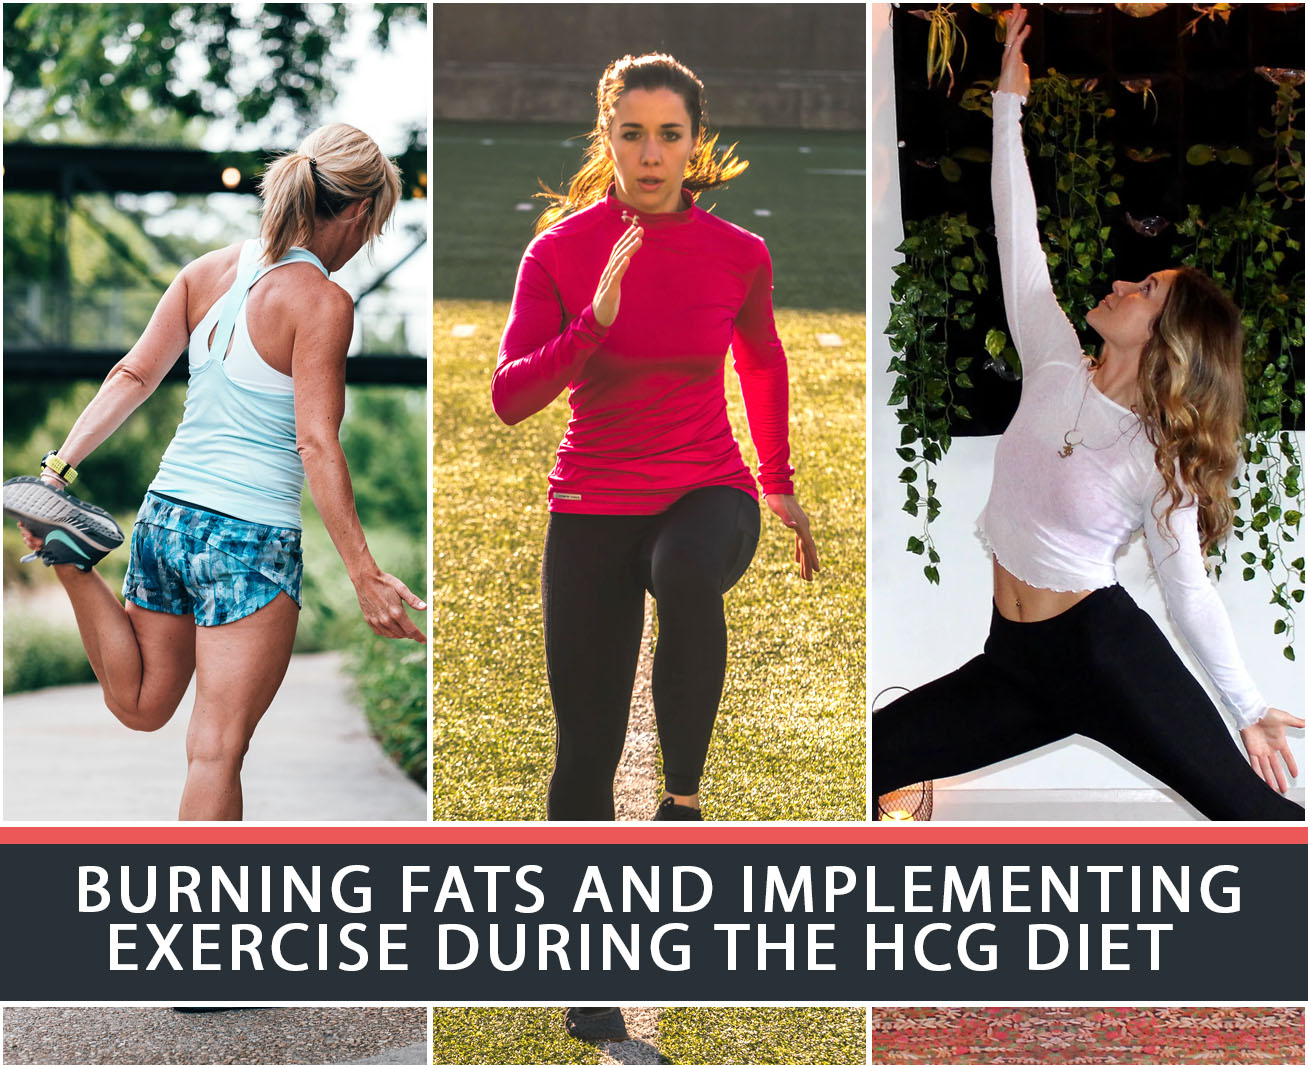 BURNING FATS AND IMPLEMENTING EXERCISE DURING THE HCG DIET